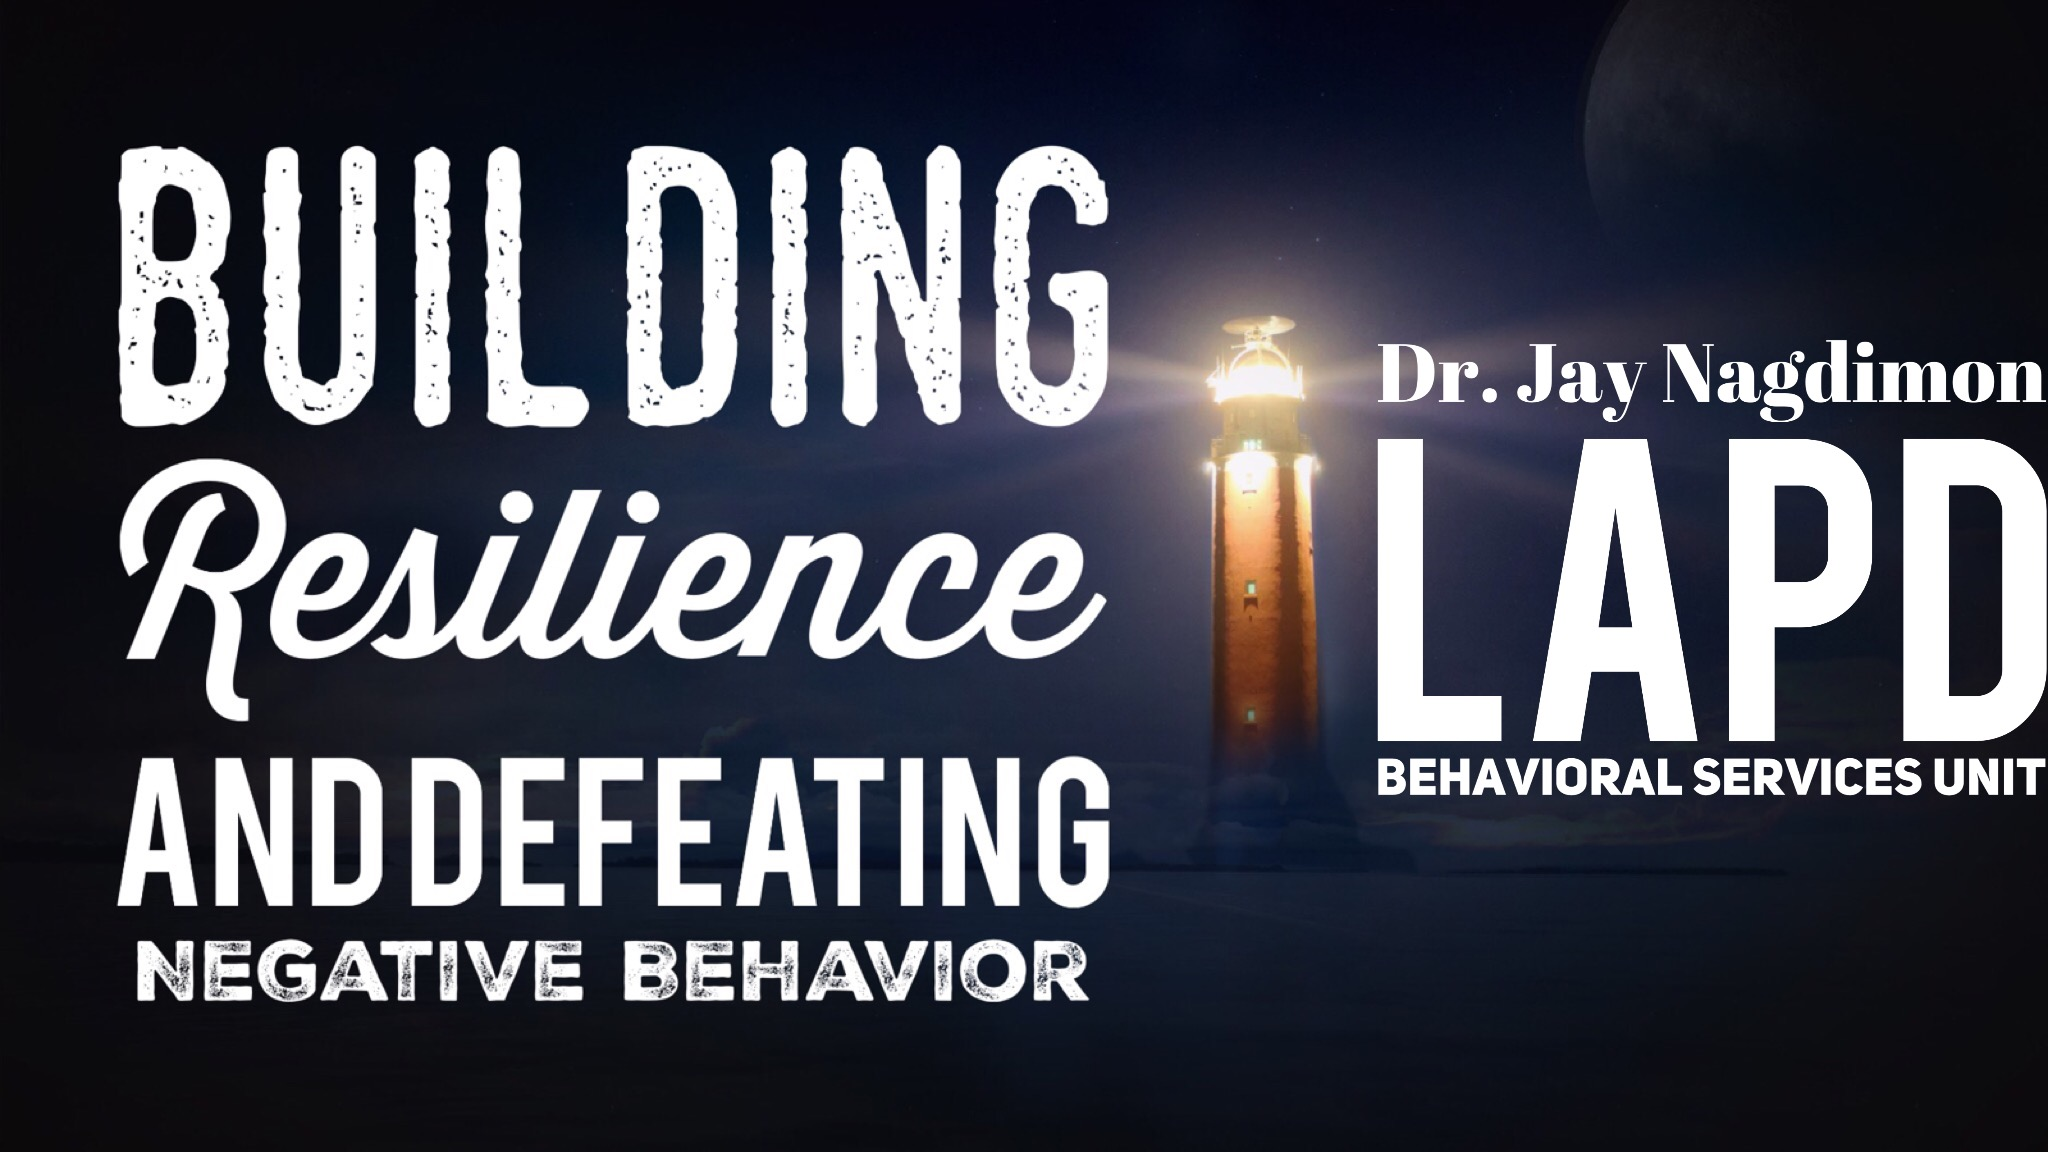 Ep 69: Building Resilience and Defeating Negative Behavior with Dr. Jay Nagdimon of the LAPD